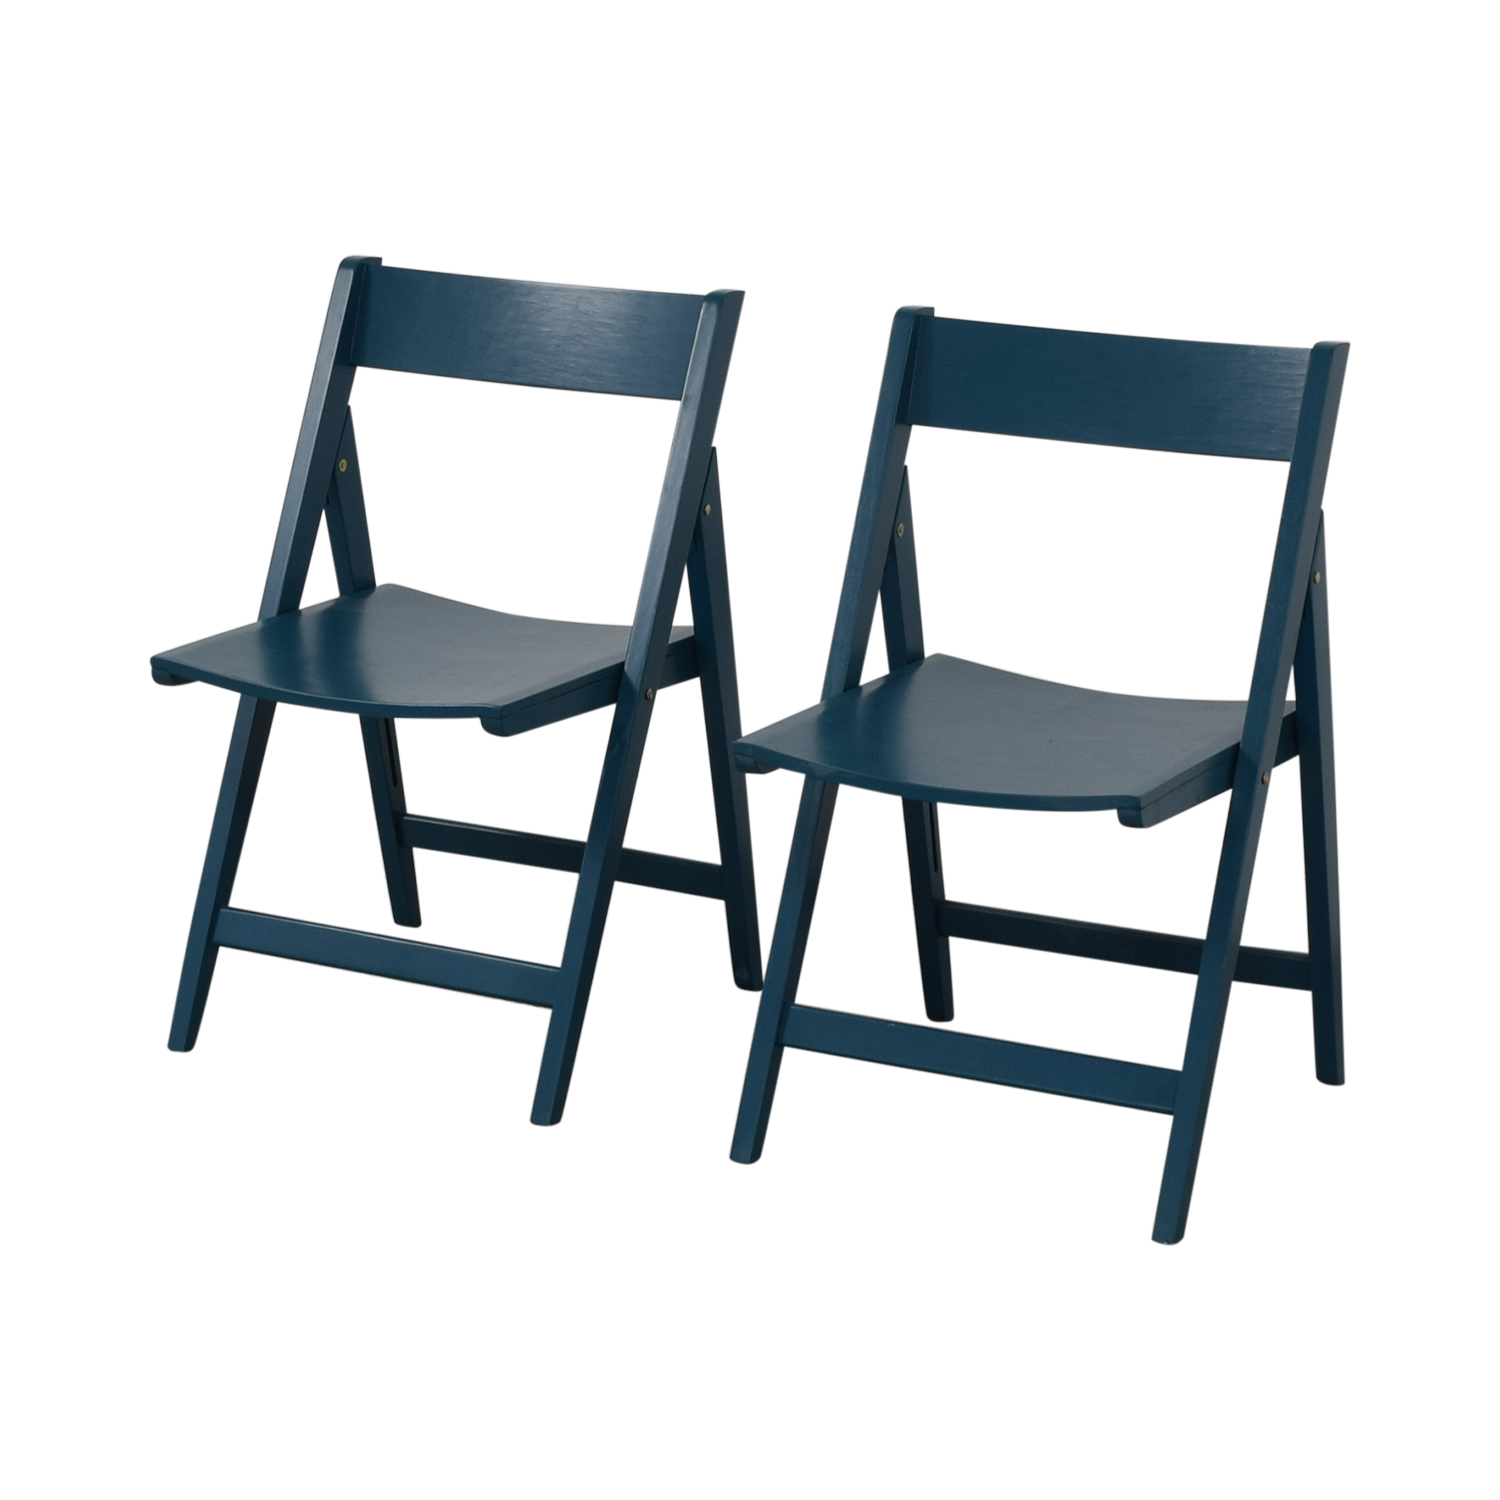 buy  Blue Folding Chairs online